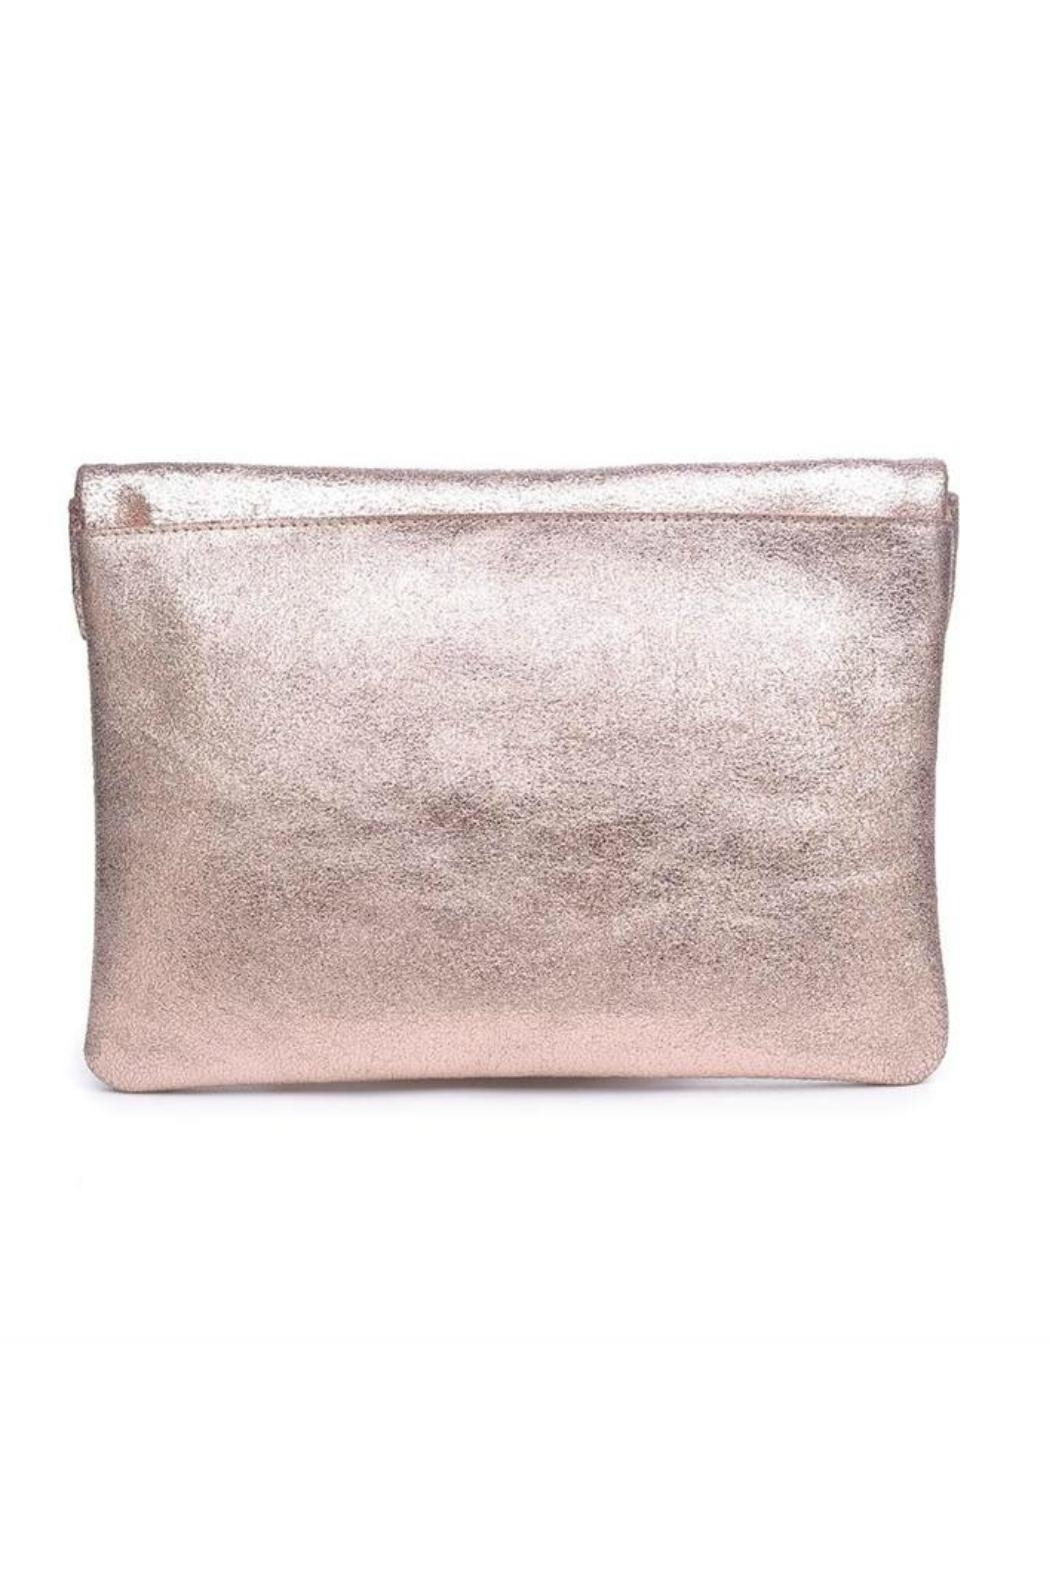 Moda Luxe Gianna Metallic-Leather Clutch - Side Cropped Image